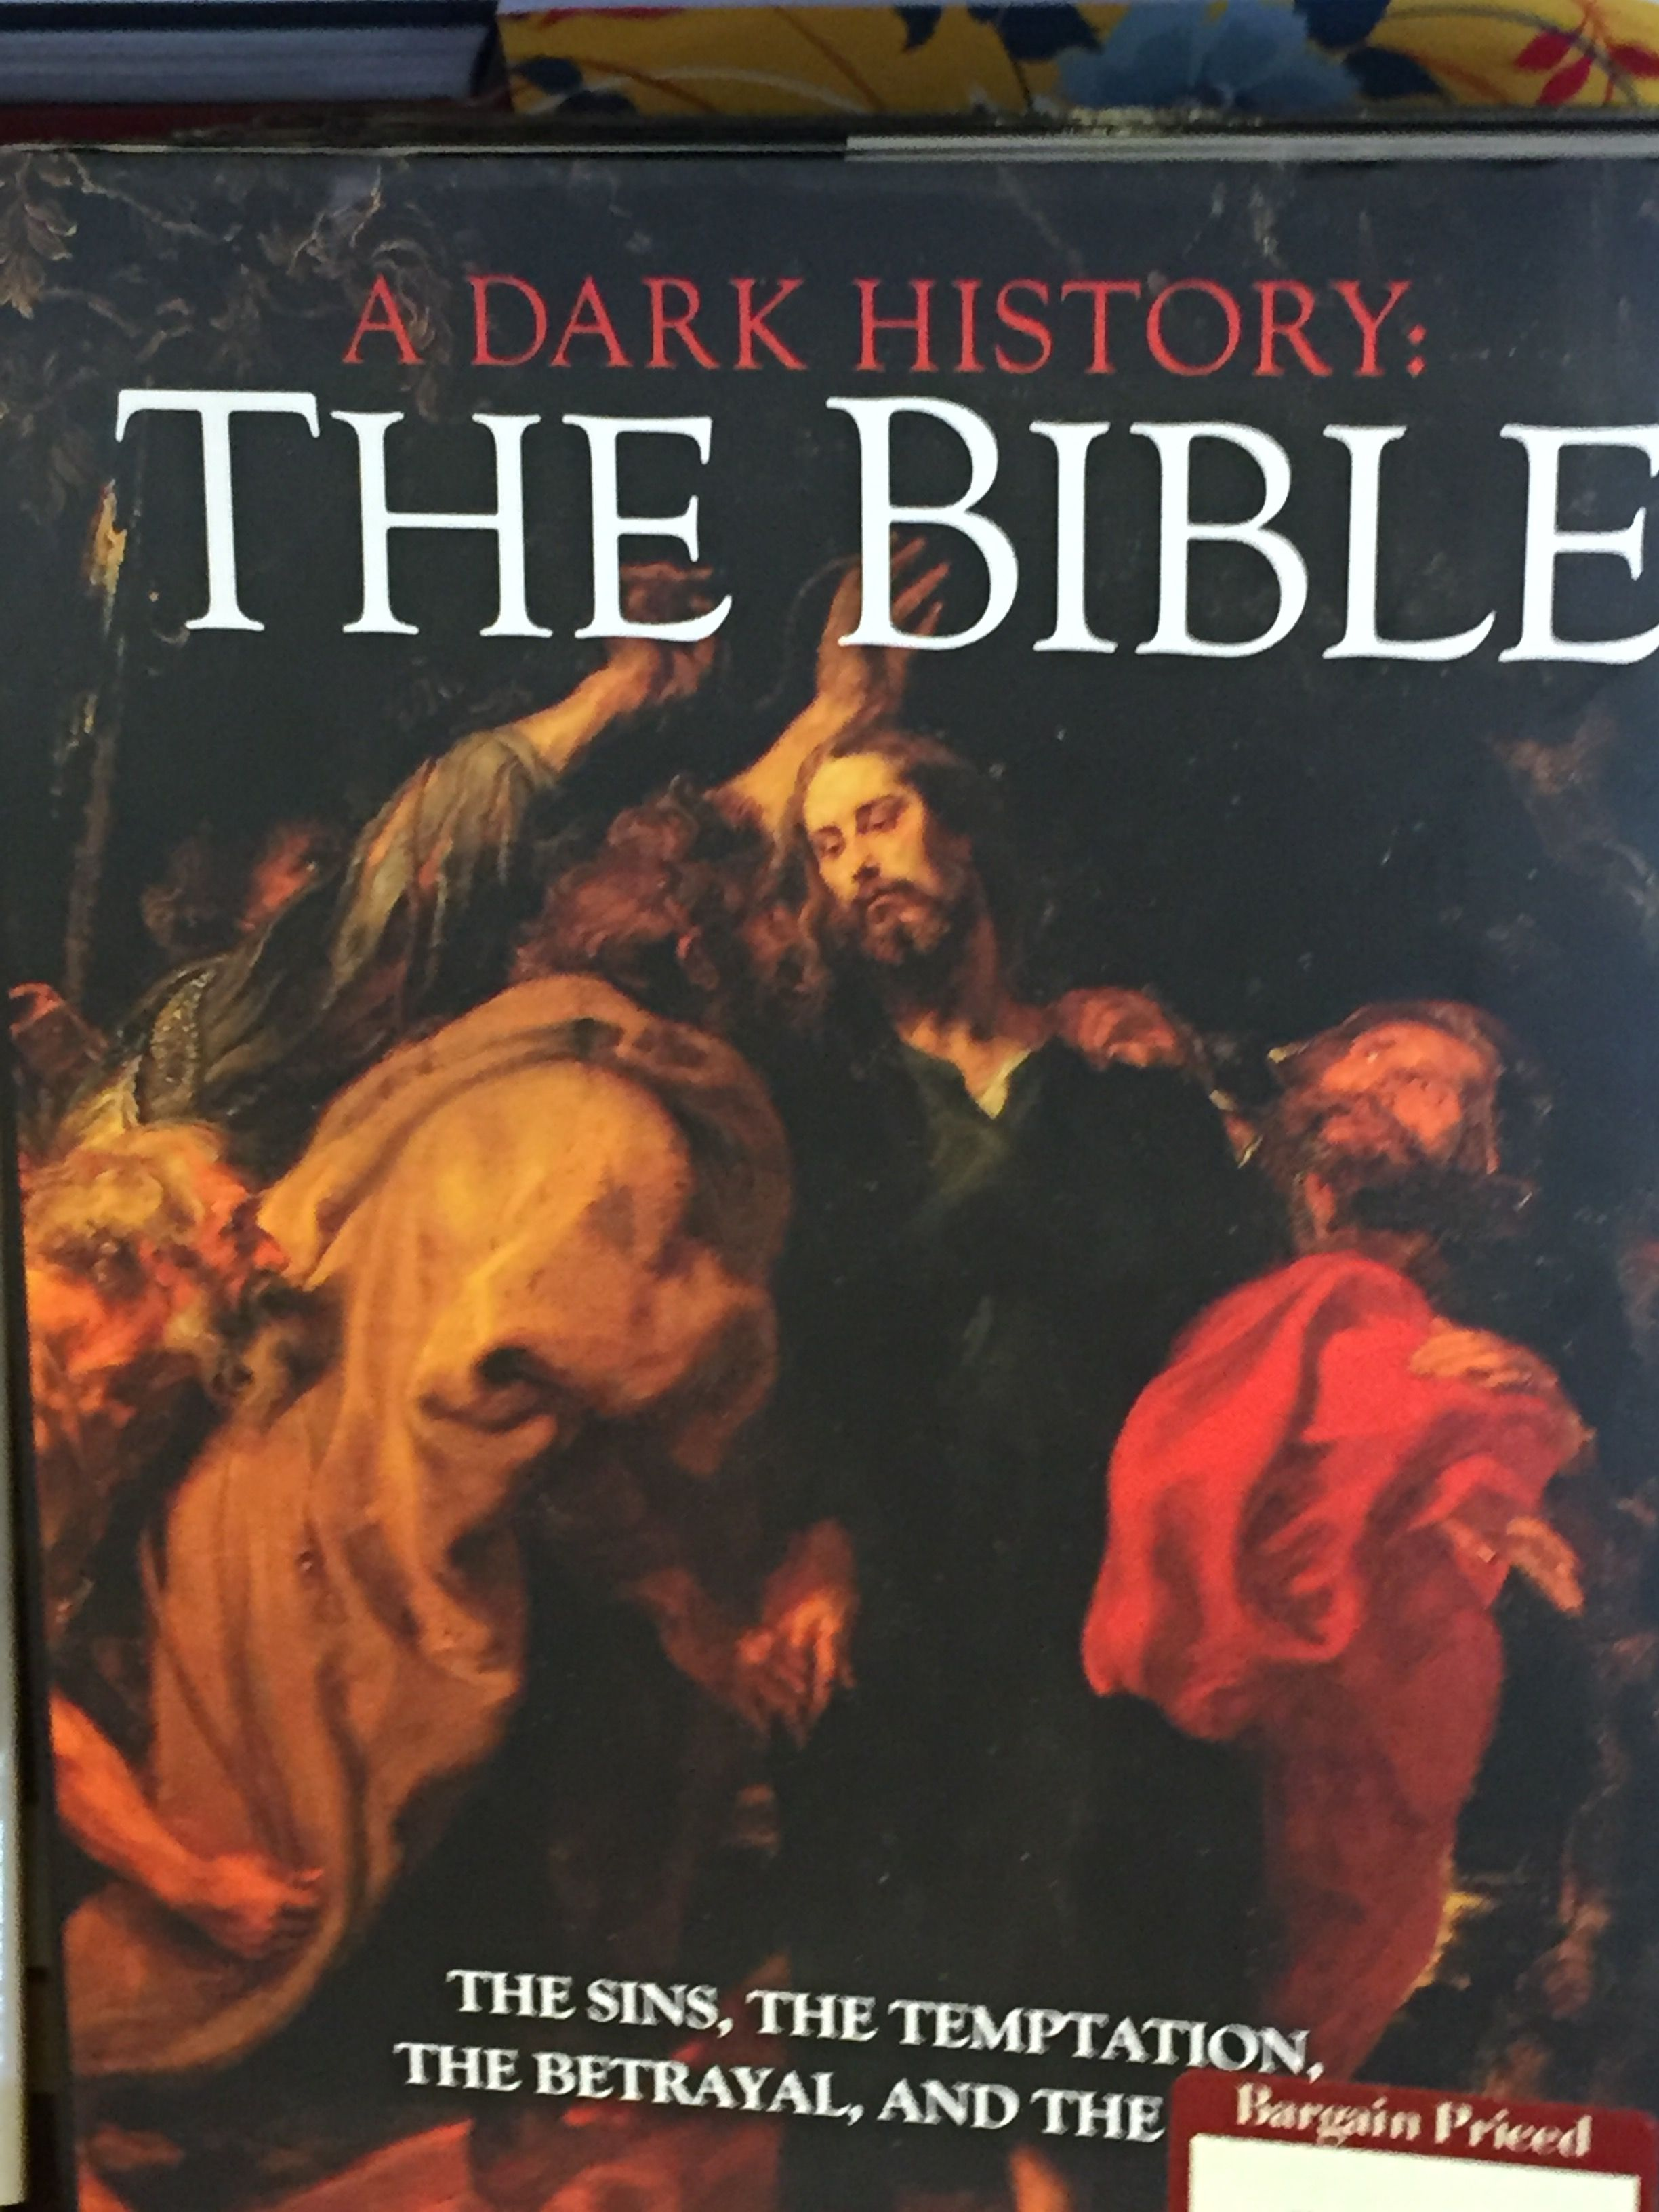 A Dark History: The Bible